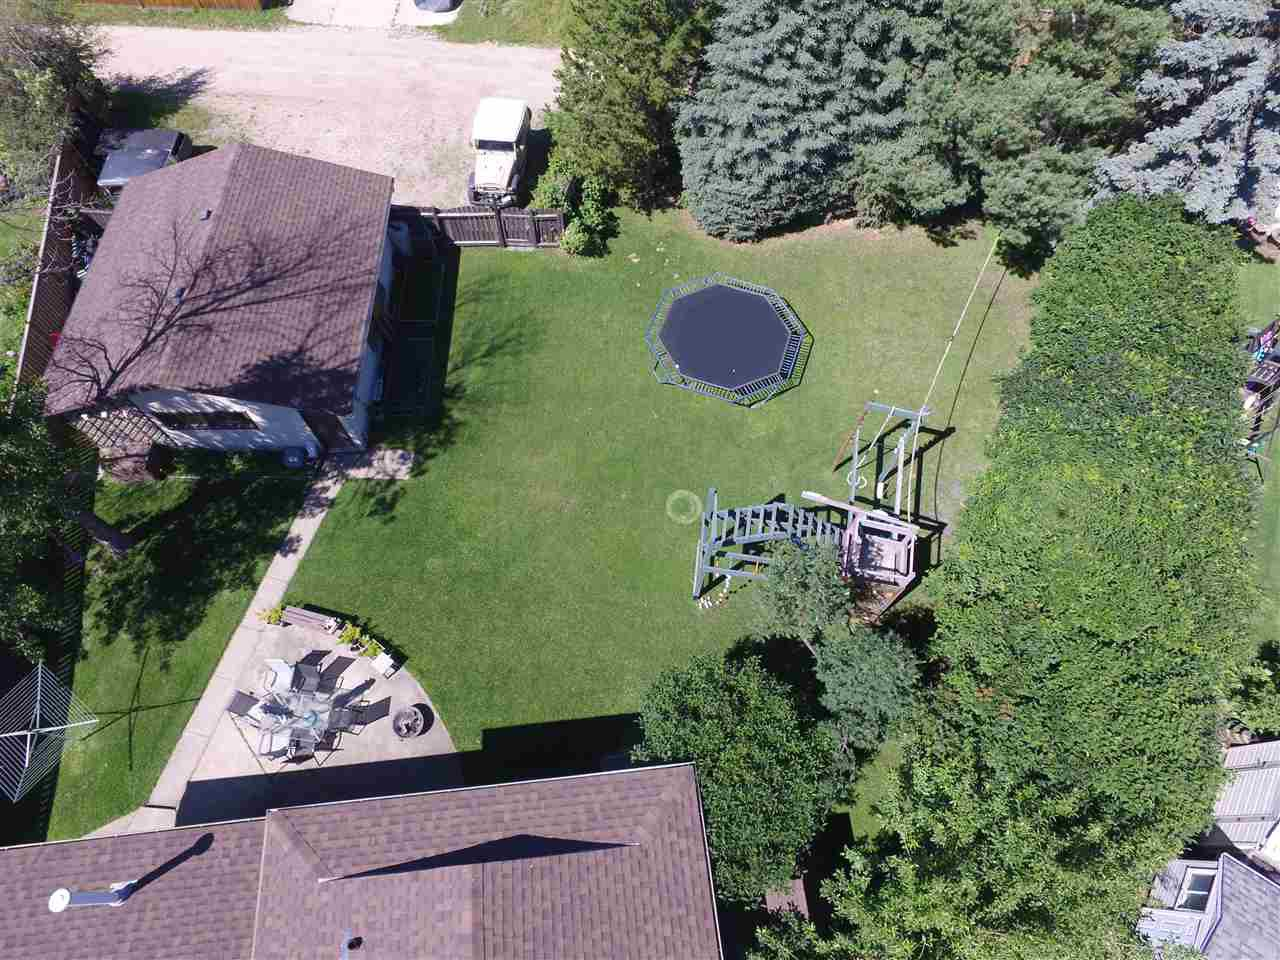 Photo 29: Photos: 125 Spruce Crescent: Wetaskiwin House for sale : MLS®# E4207728